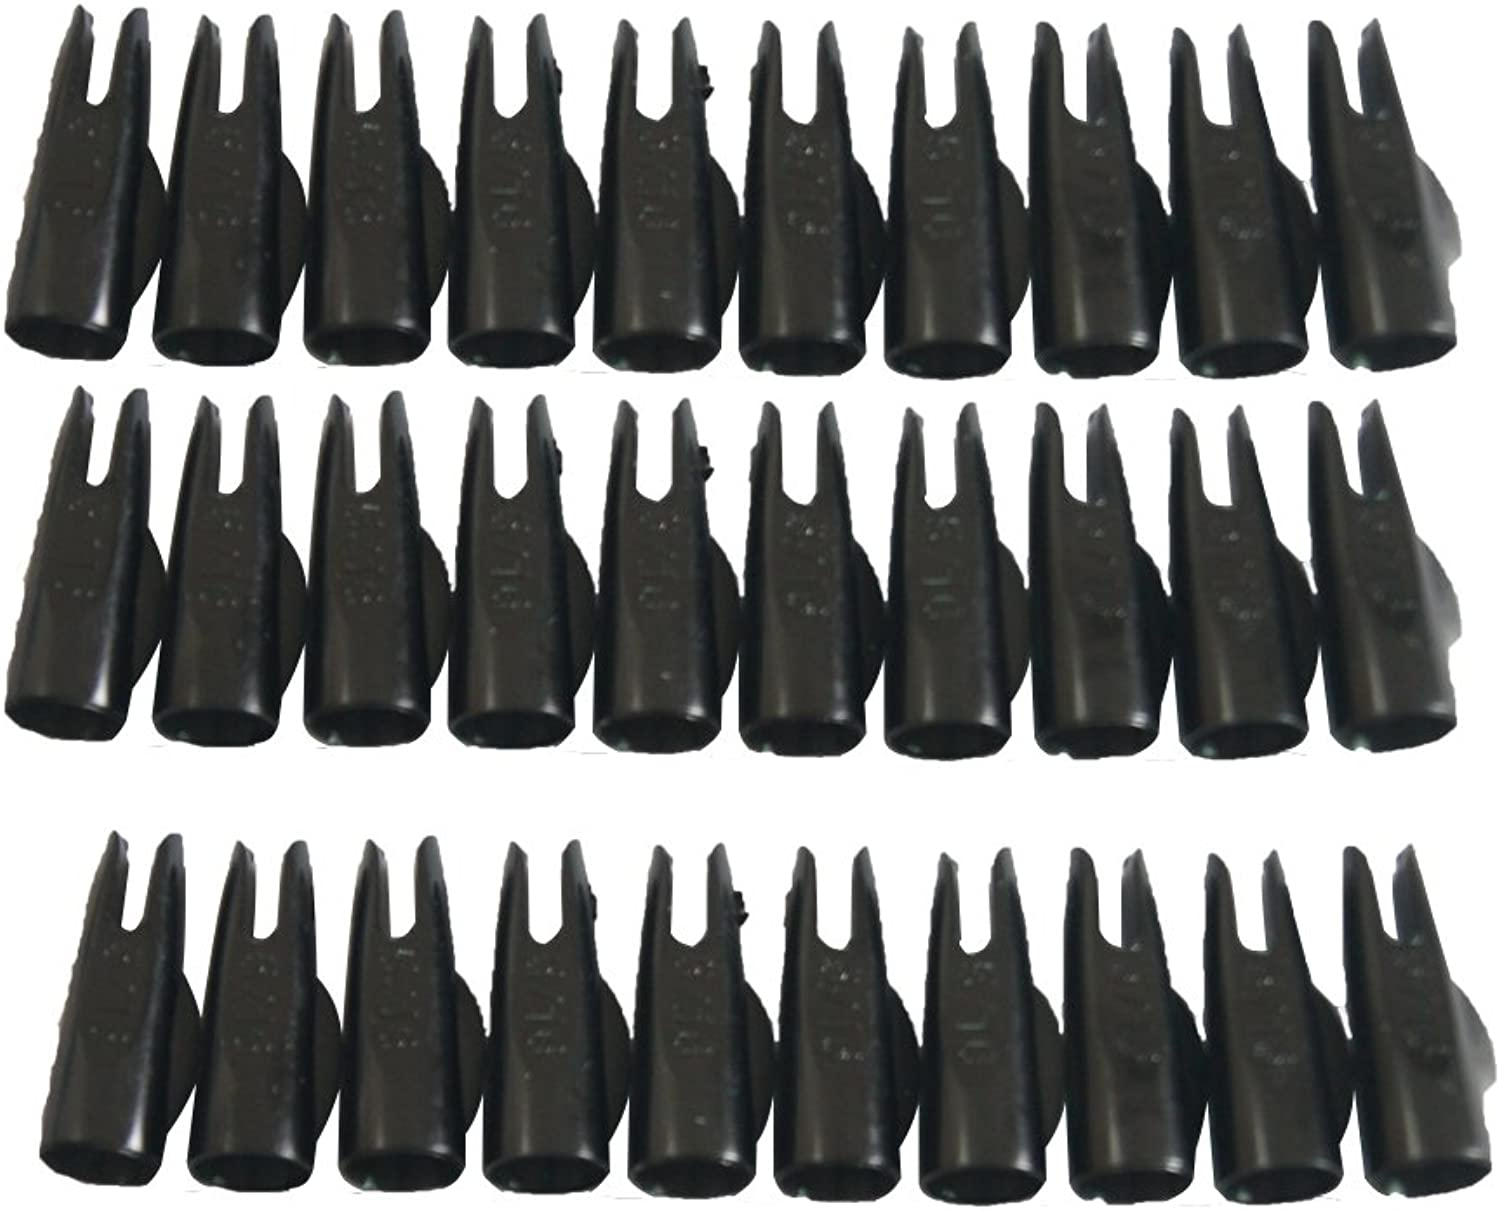 (Black) - Jiexi Hwyp Archery Hunting Compound Bow Plastic Arrow Nocks for 0.8cm Arrows Pack of 50